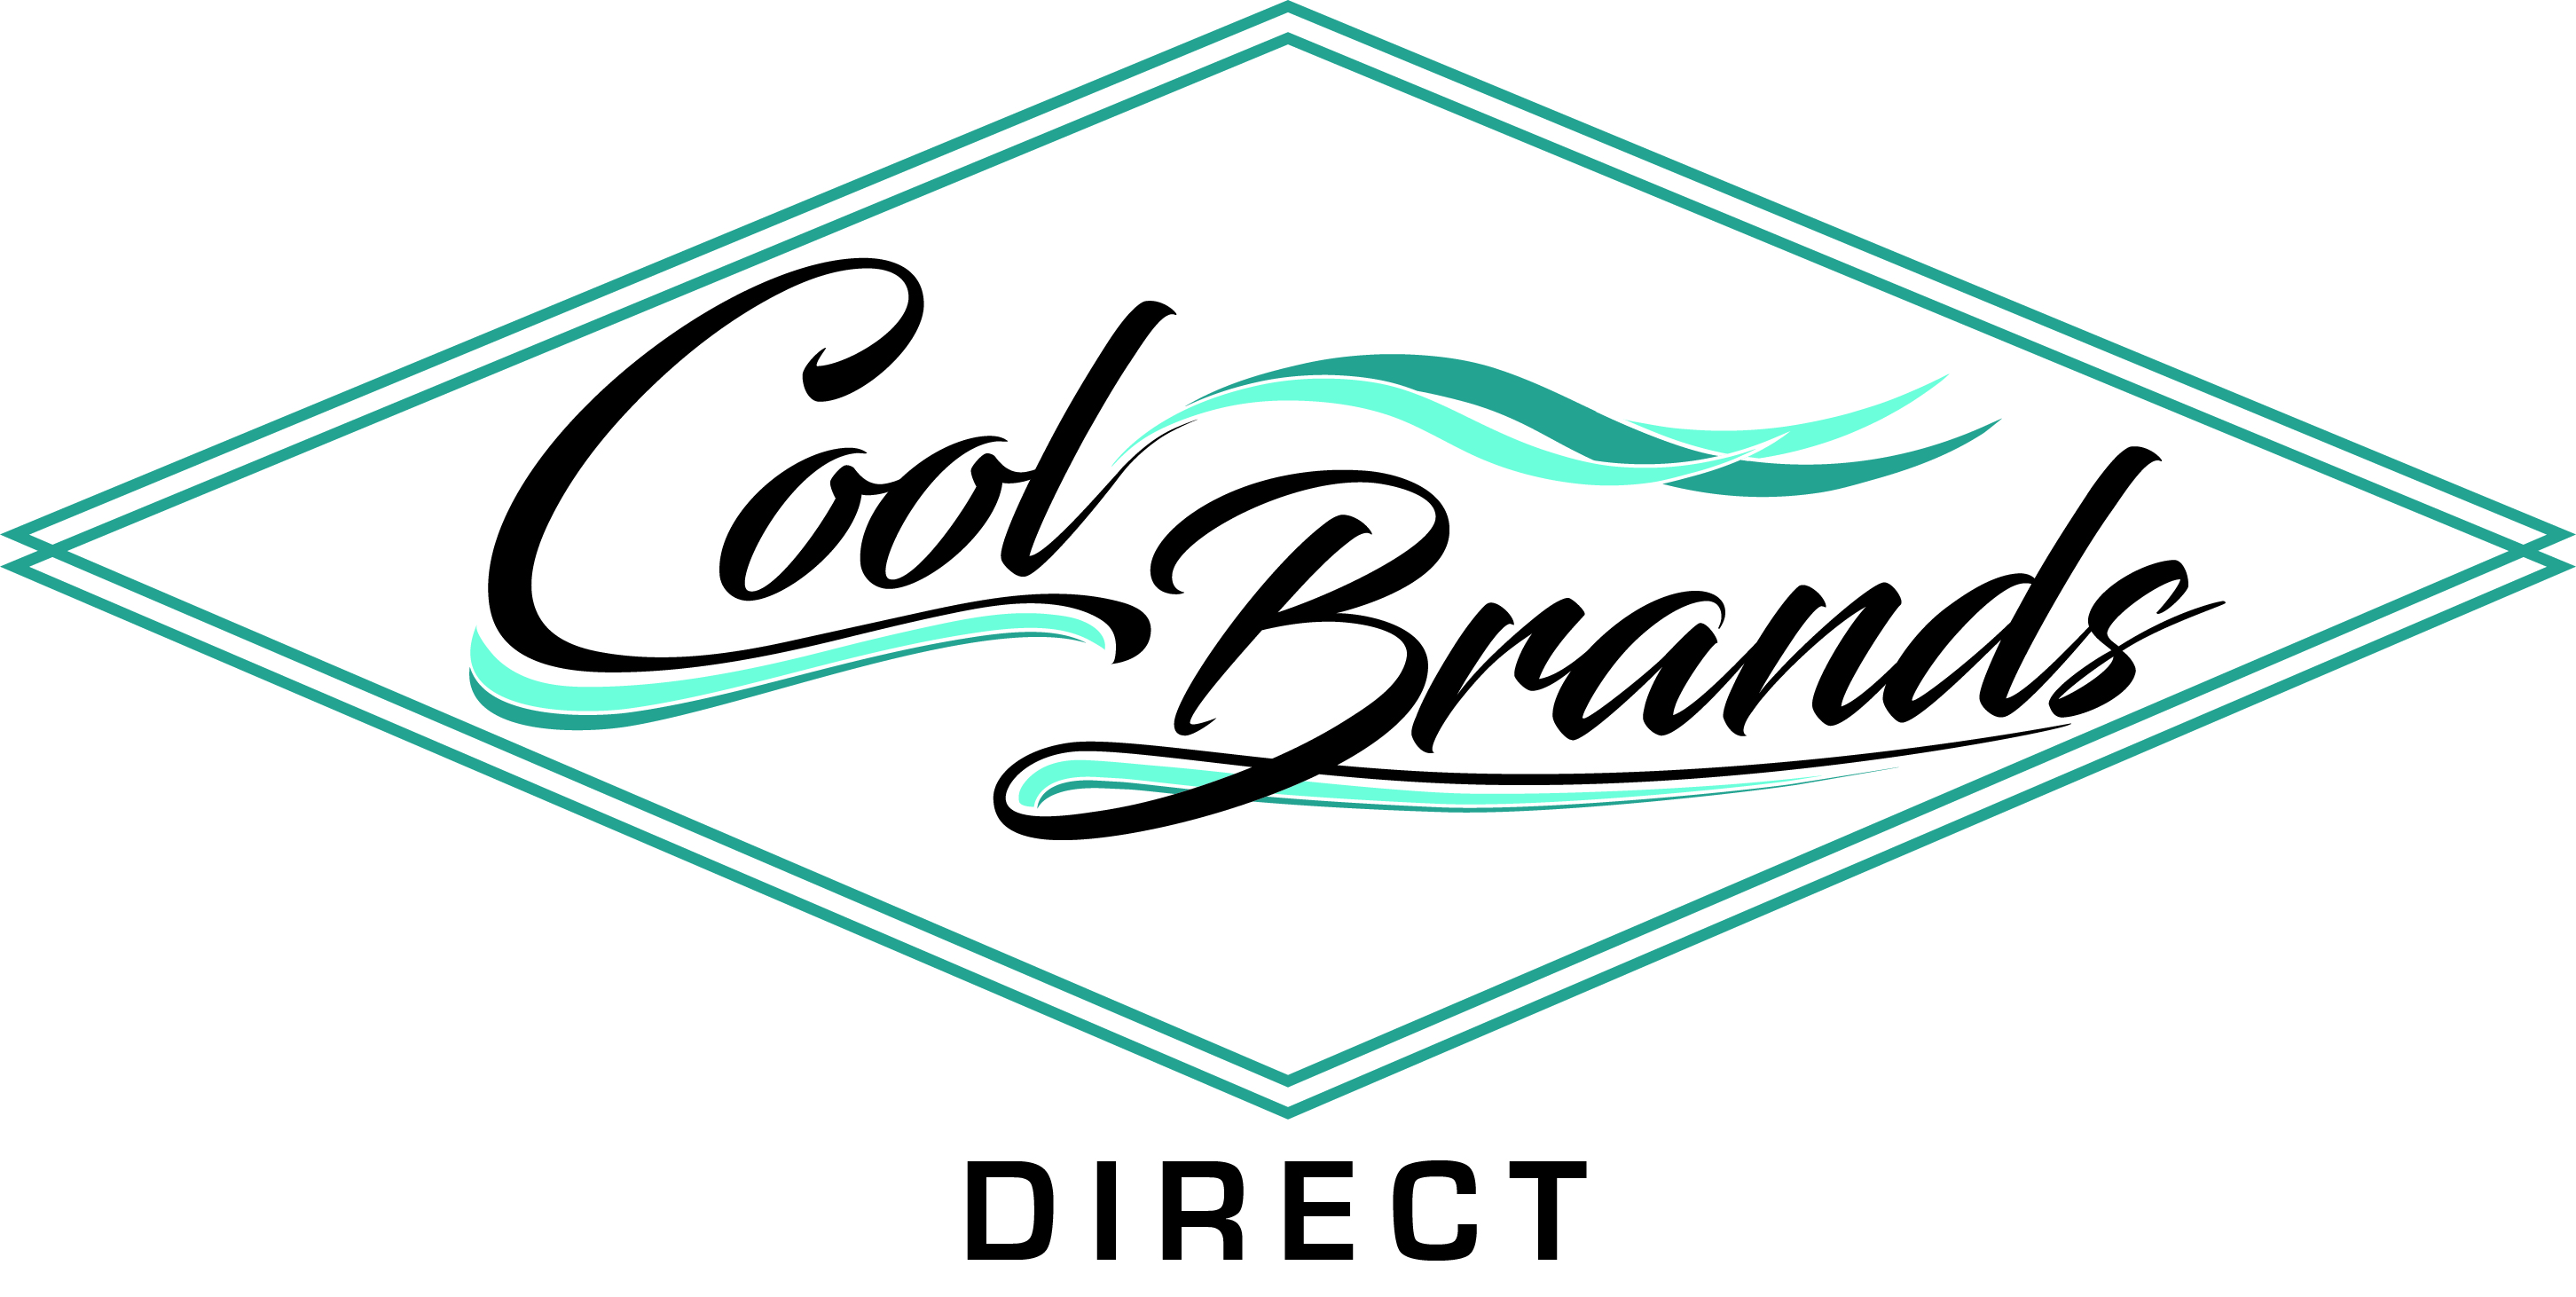 Logo for CBD store: Cool Brands Direct